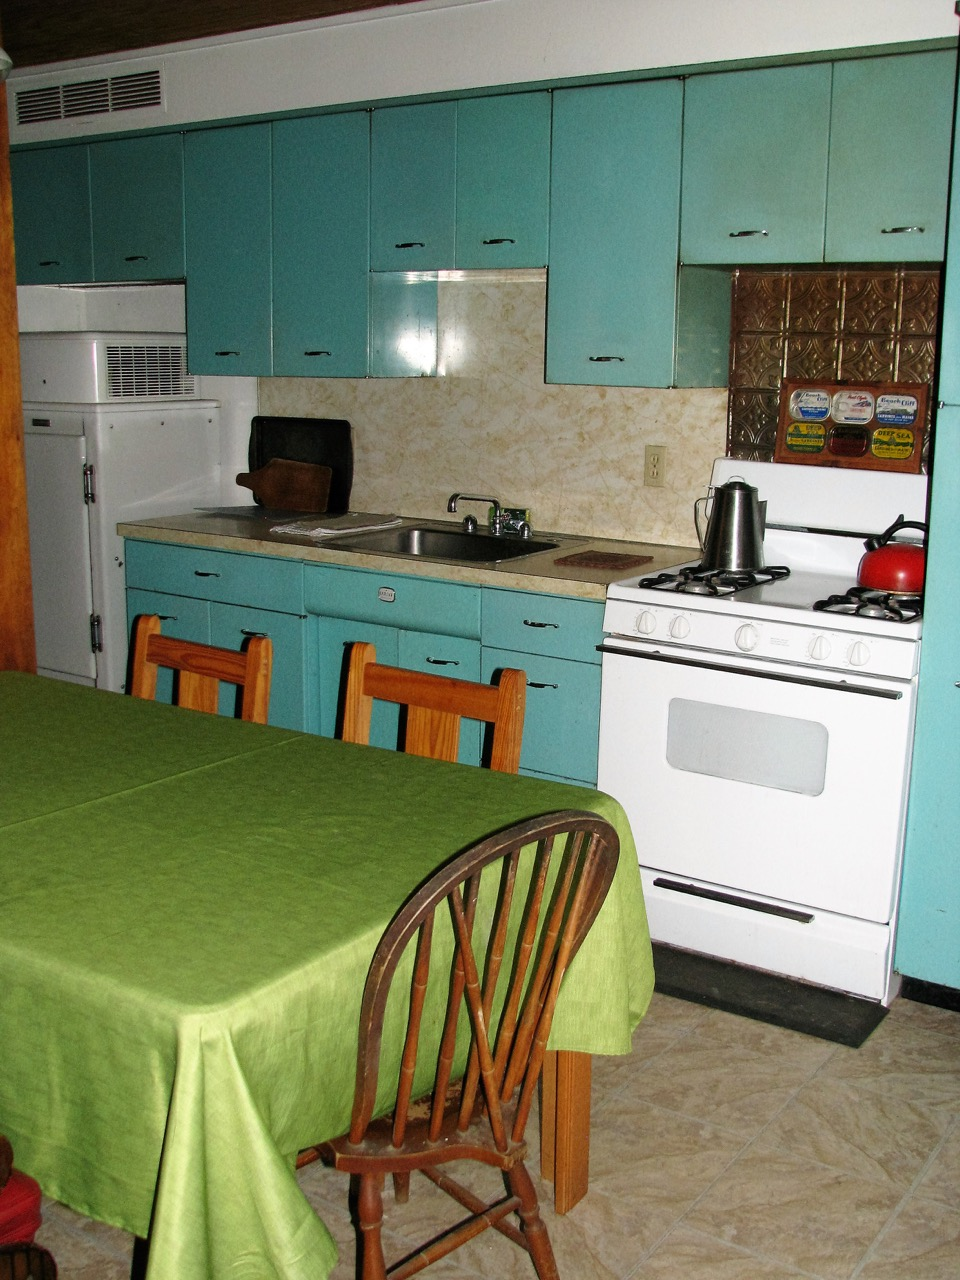 Kitchen in the North Housekeeping Lodge